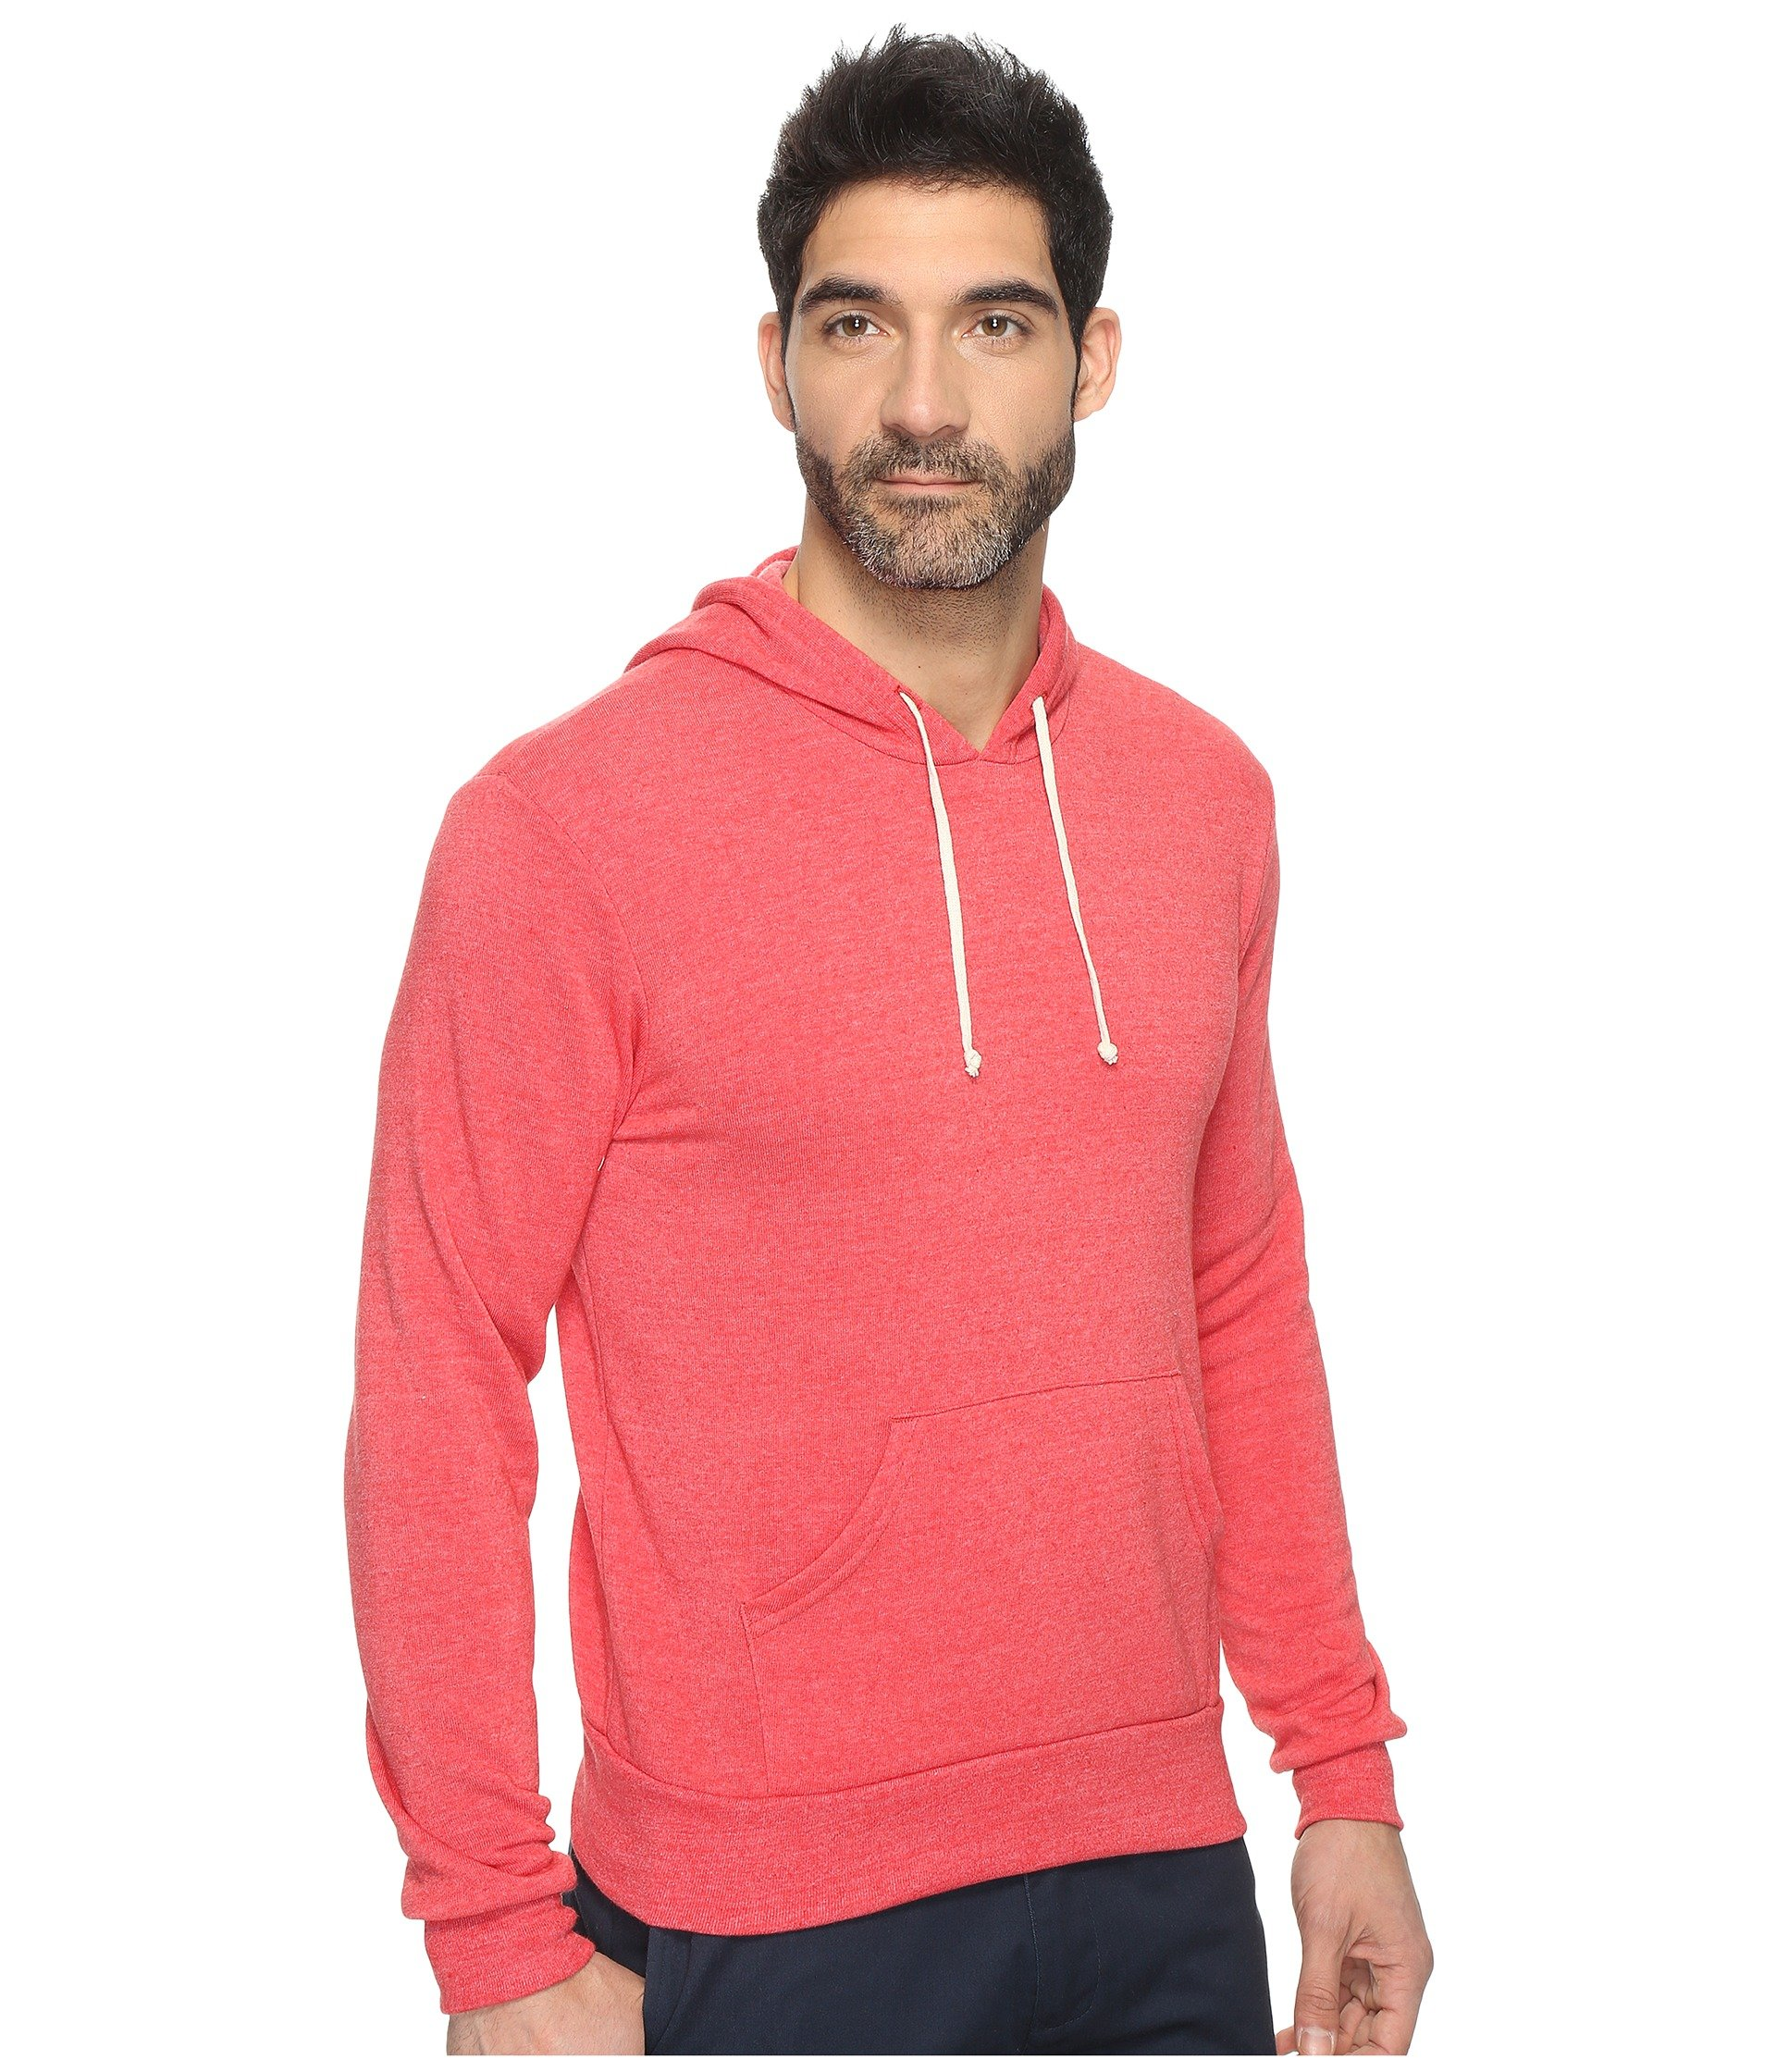 Pullover Red True Eco Alternative Hoodie Challenger T1wP5q0